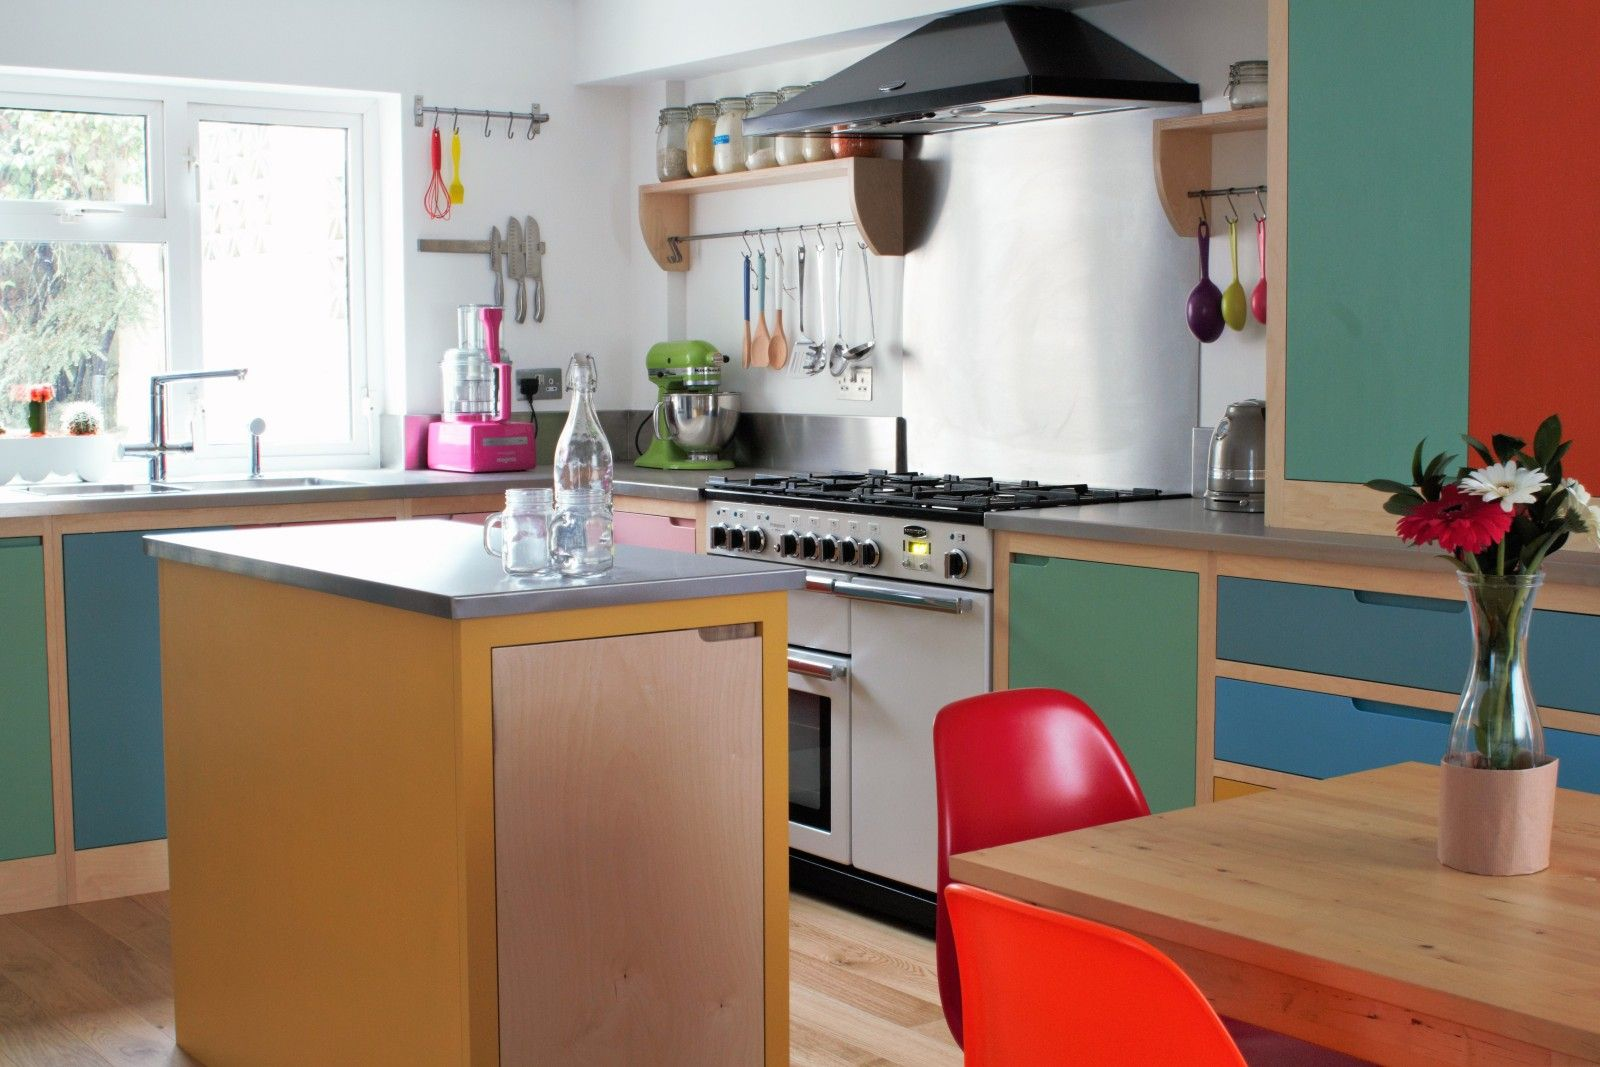 Colour by numbers kitchen plywood kitchen plywood and plywood